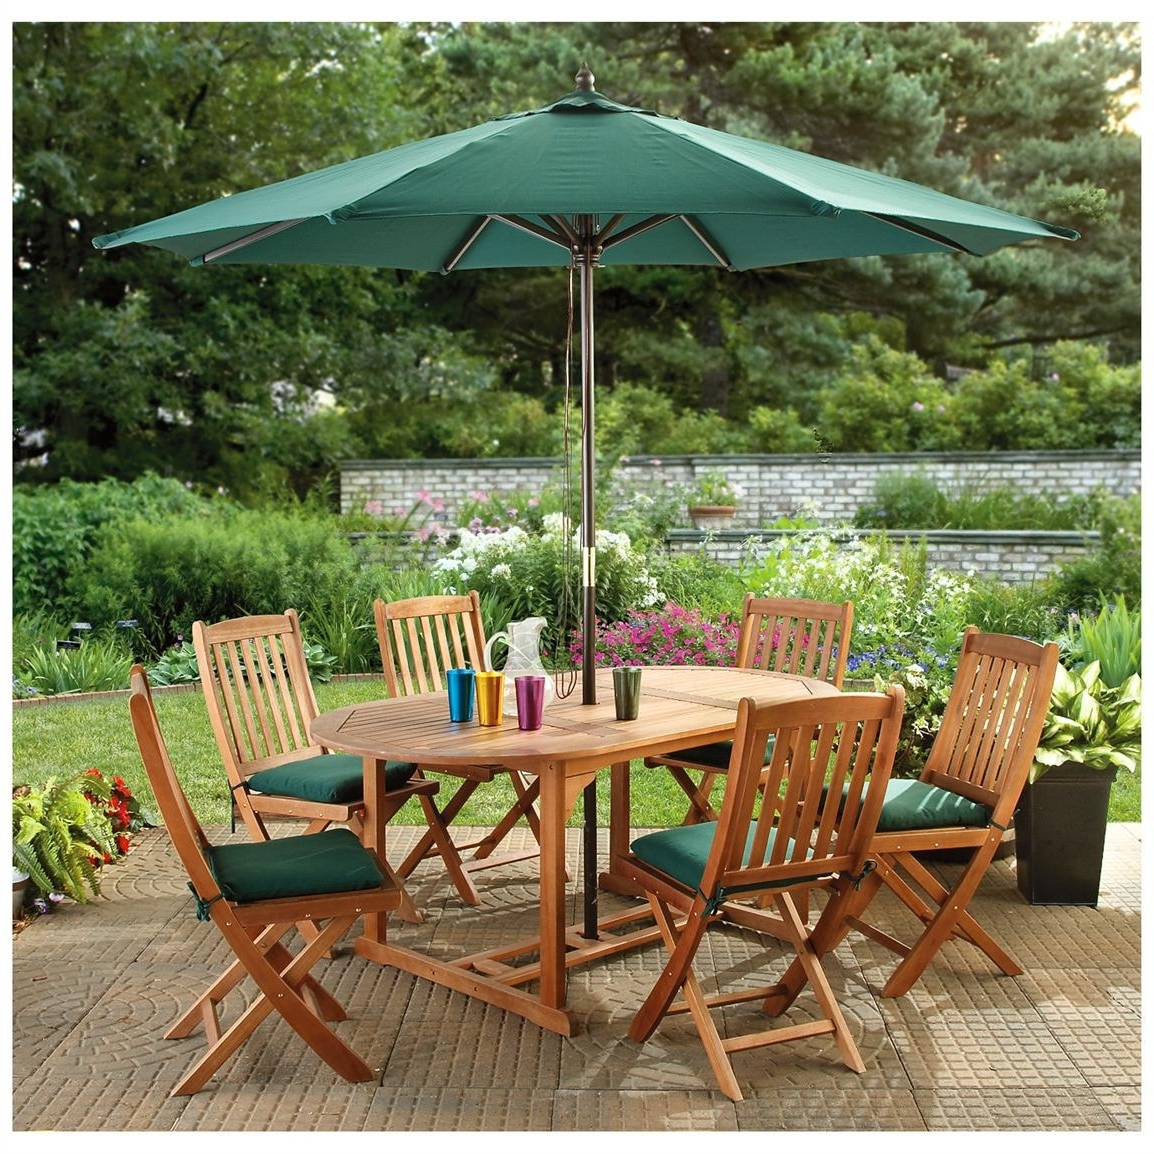 Patio Umbrellas For Tables Pertaining To Fashionable Patio Umbrella Table Attachment — Mistikcamping Home Design : The (View 6 of 20)